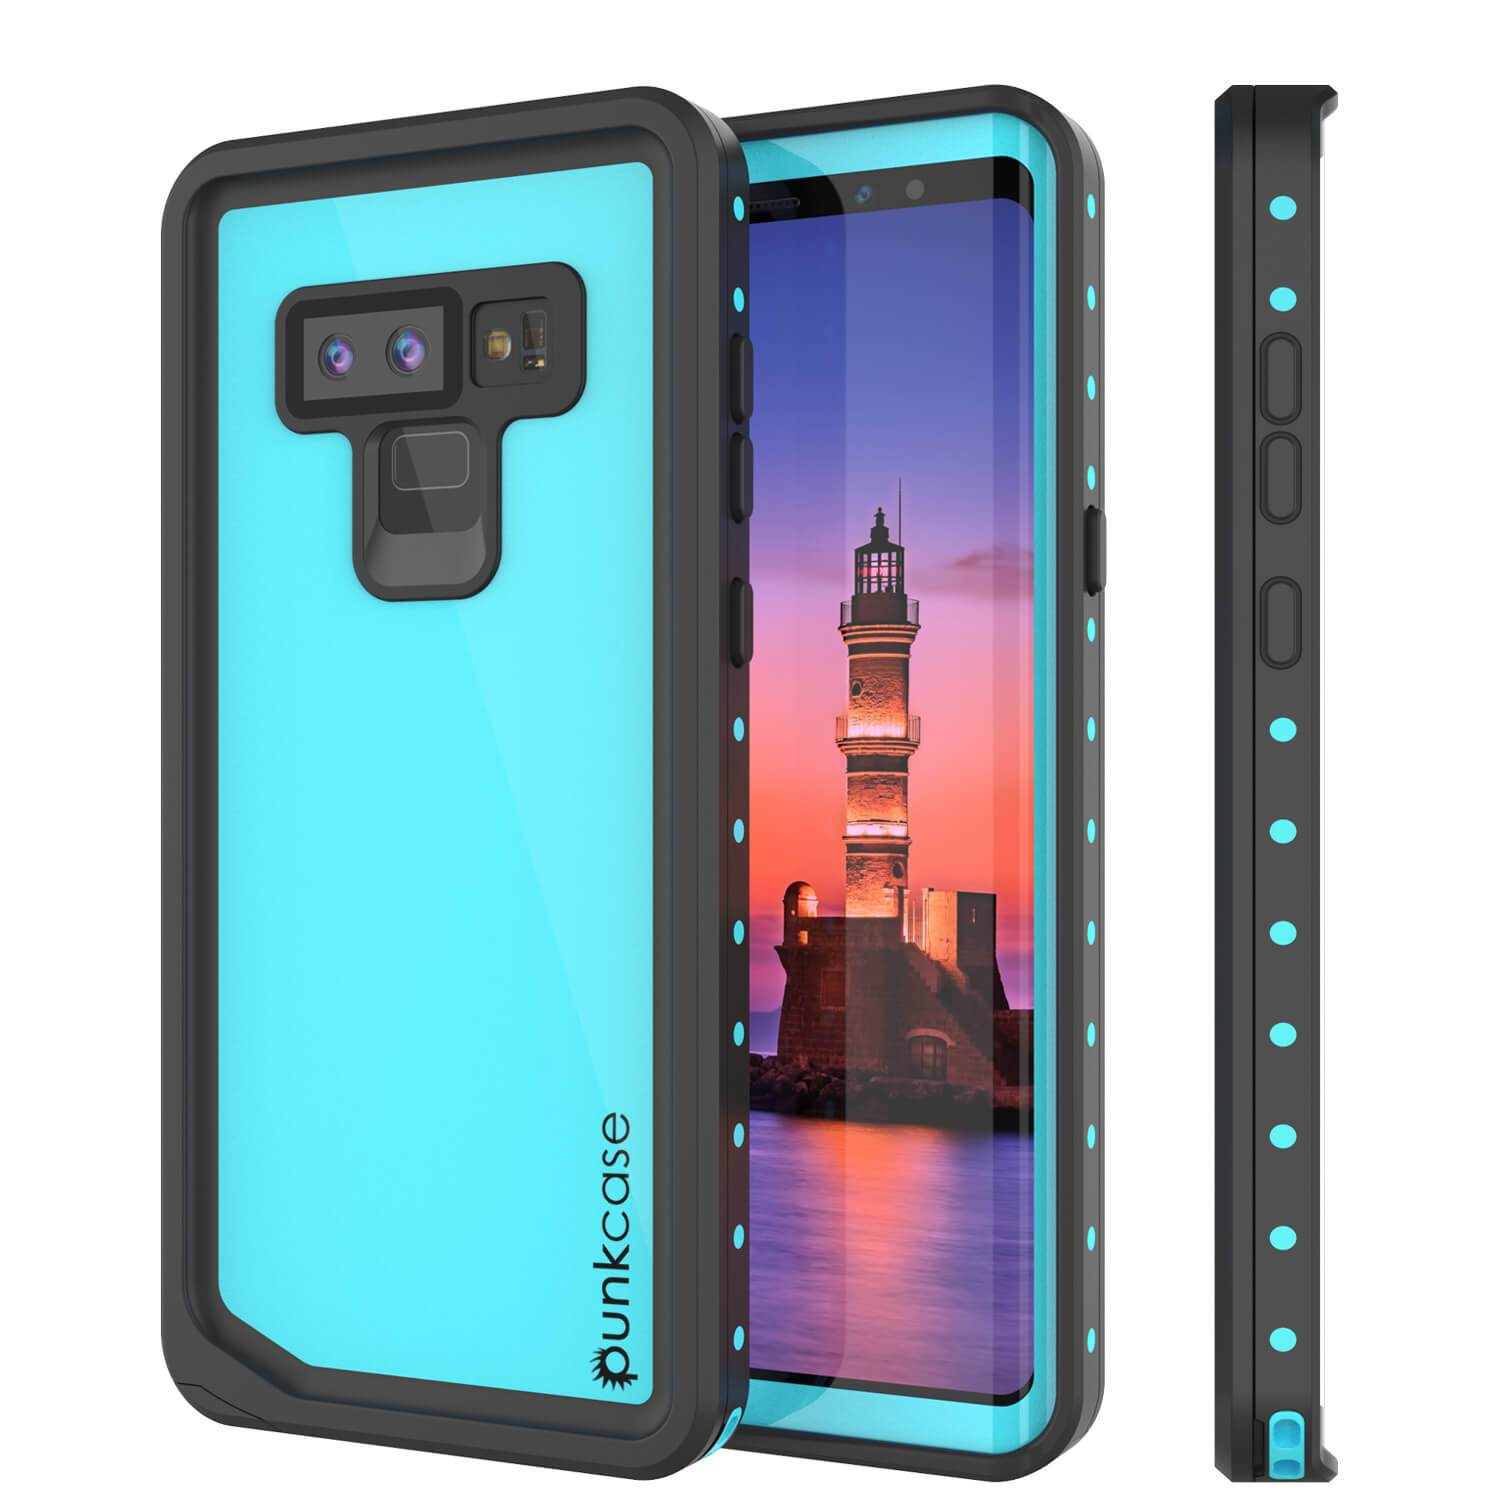 Galaxy Note 9 Waterproof Case PunkCase StudStar [Teal] Thin 6.6ft